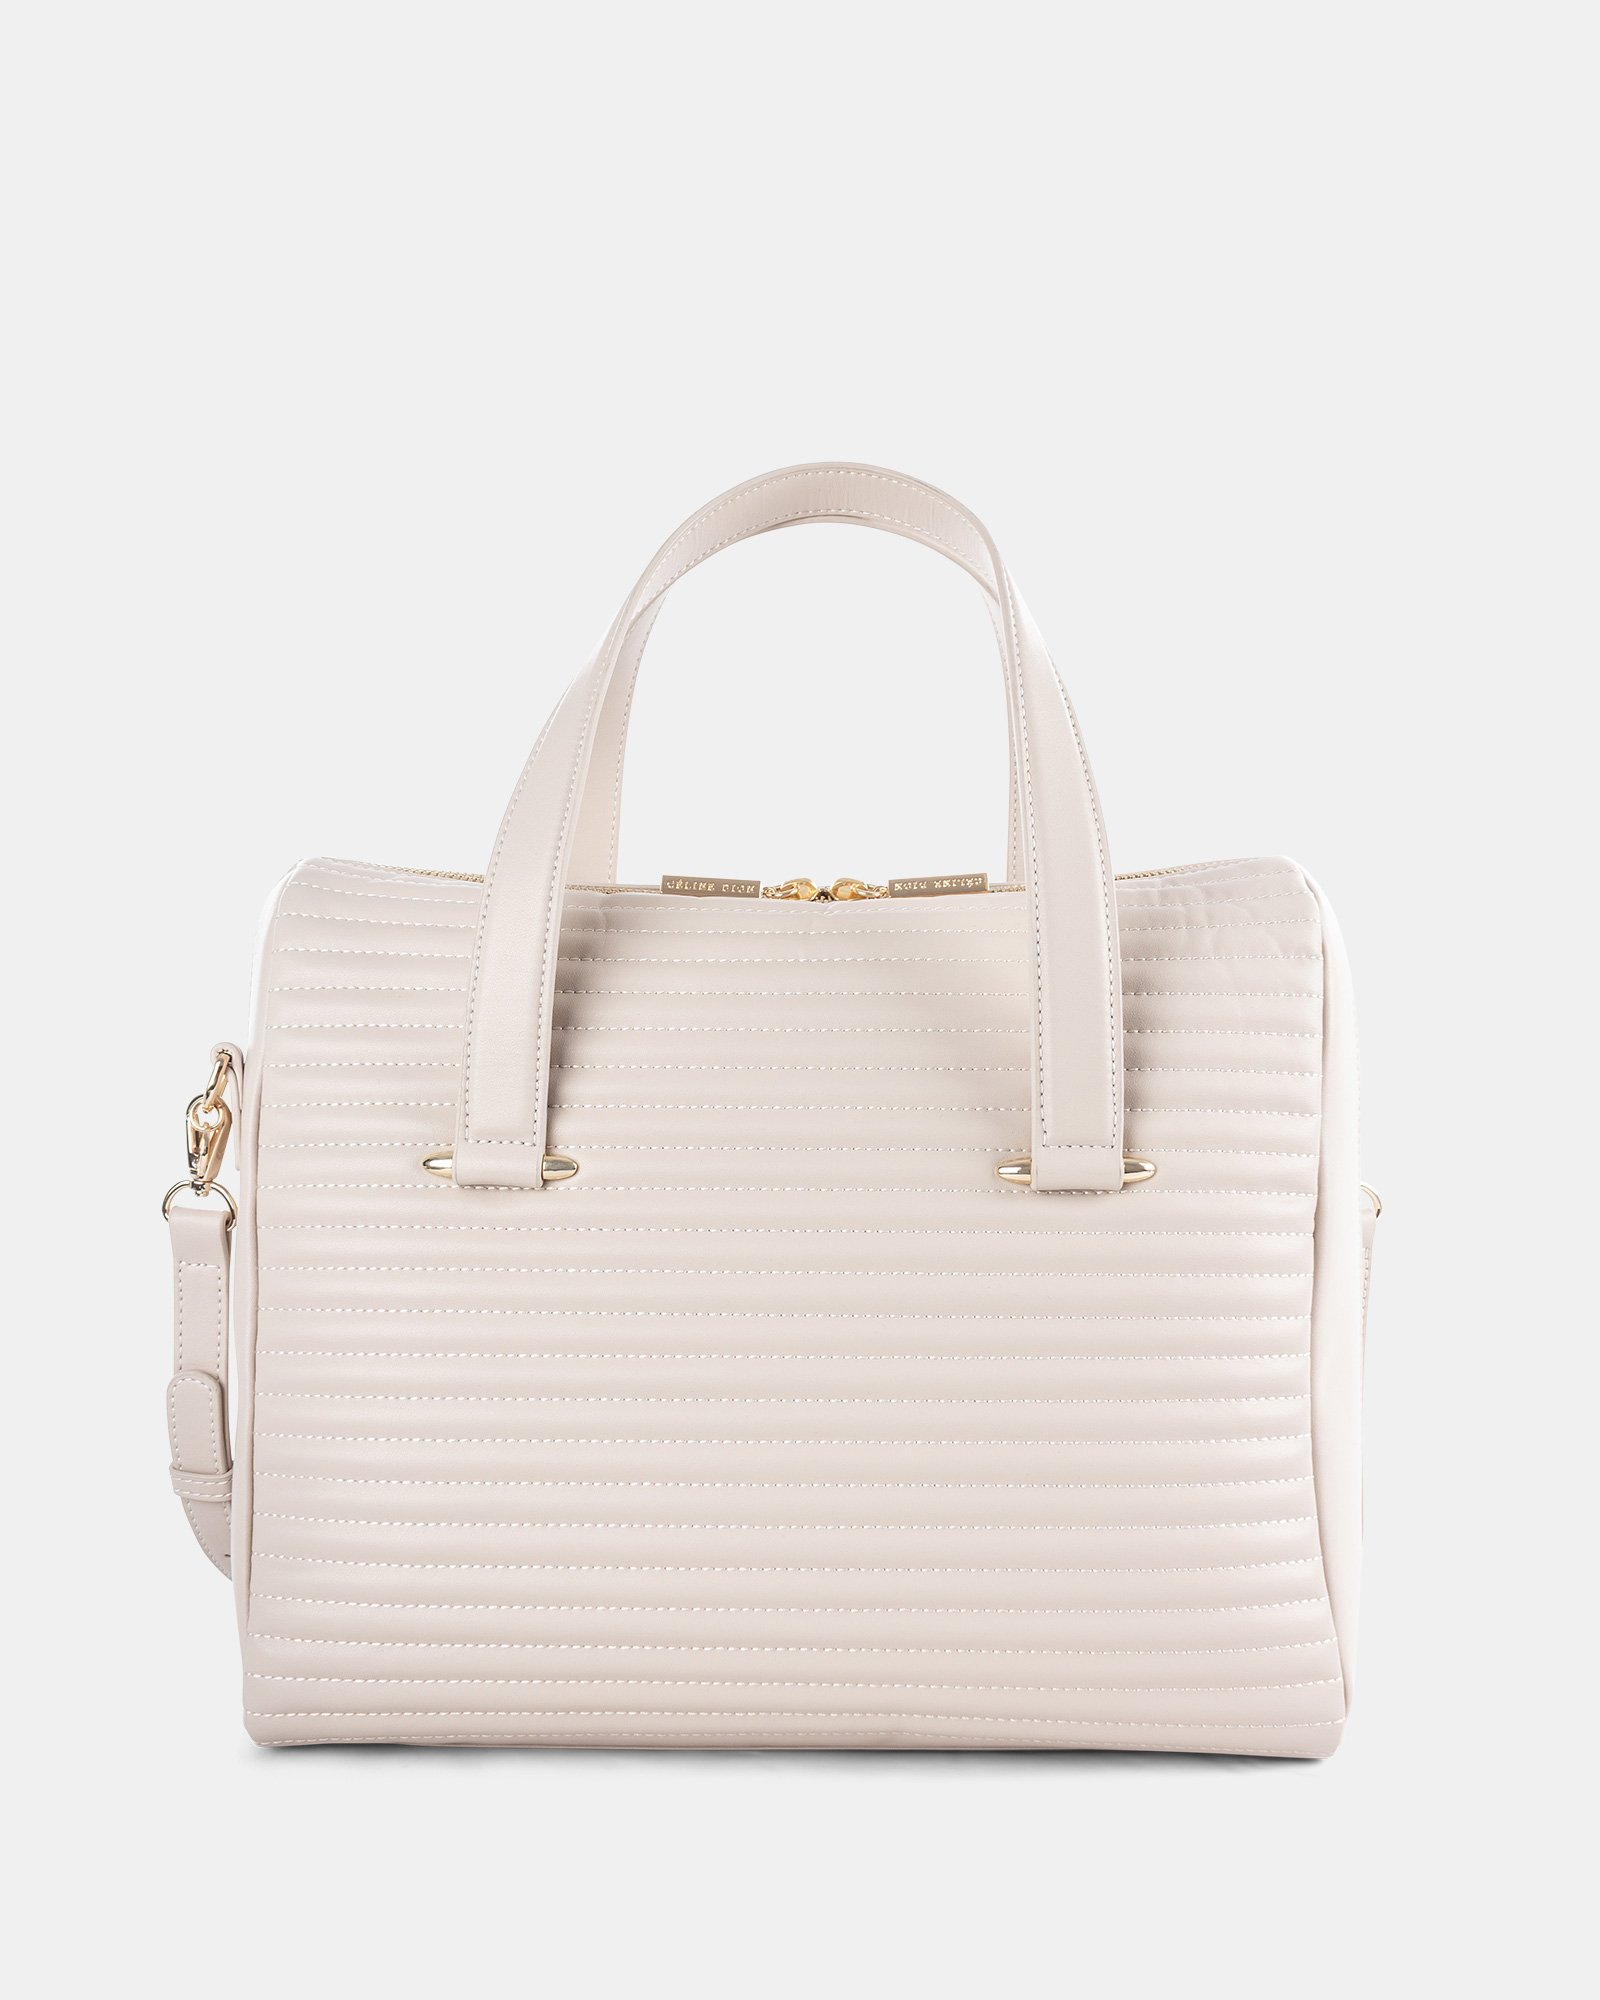 VIBRATO - LEATHER SATCHEL WITH Adjustable and removable shoulder strap - VANILLA - Céline Dion - Zoom